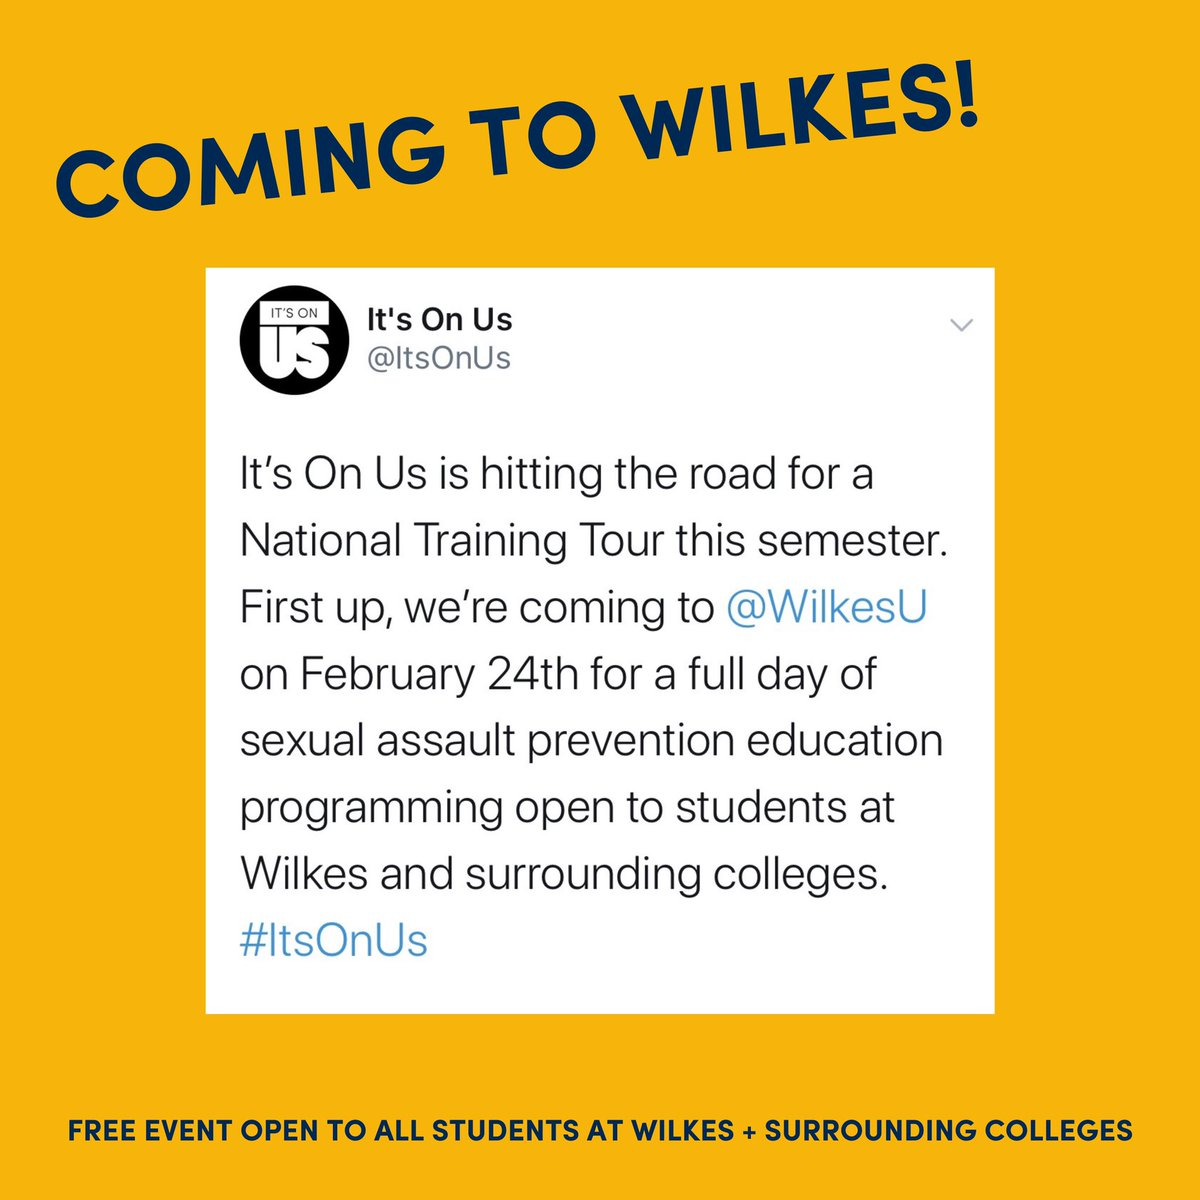 Join us February 24th at @WilkesU for the first stop on the first-ever #ItsOnUs National Training Tour!  Entry is FREE and open to all students at Wilkes and surrounding colleges. Register here for a full day of sexual assault prevention education: http://bit.ly/WILKESIOU